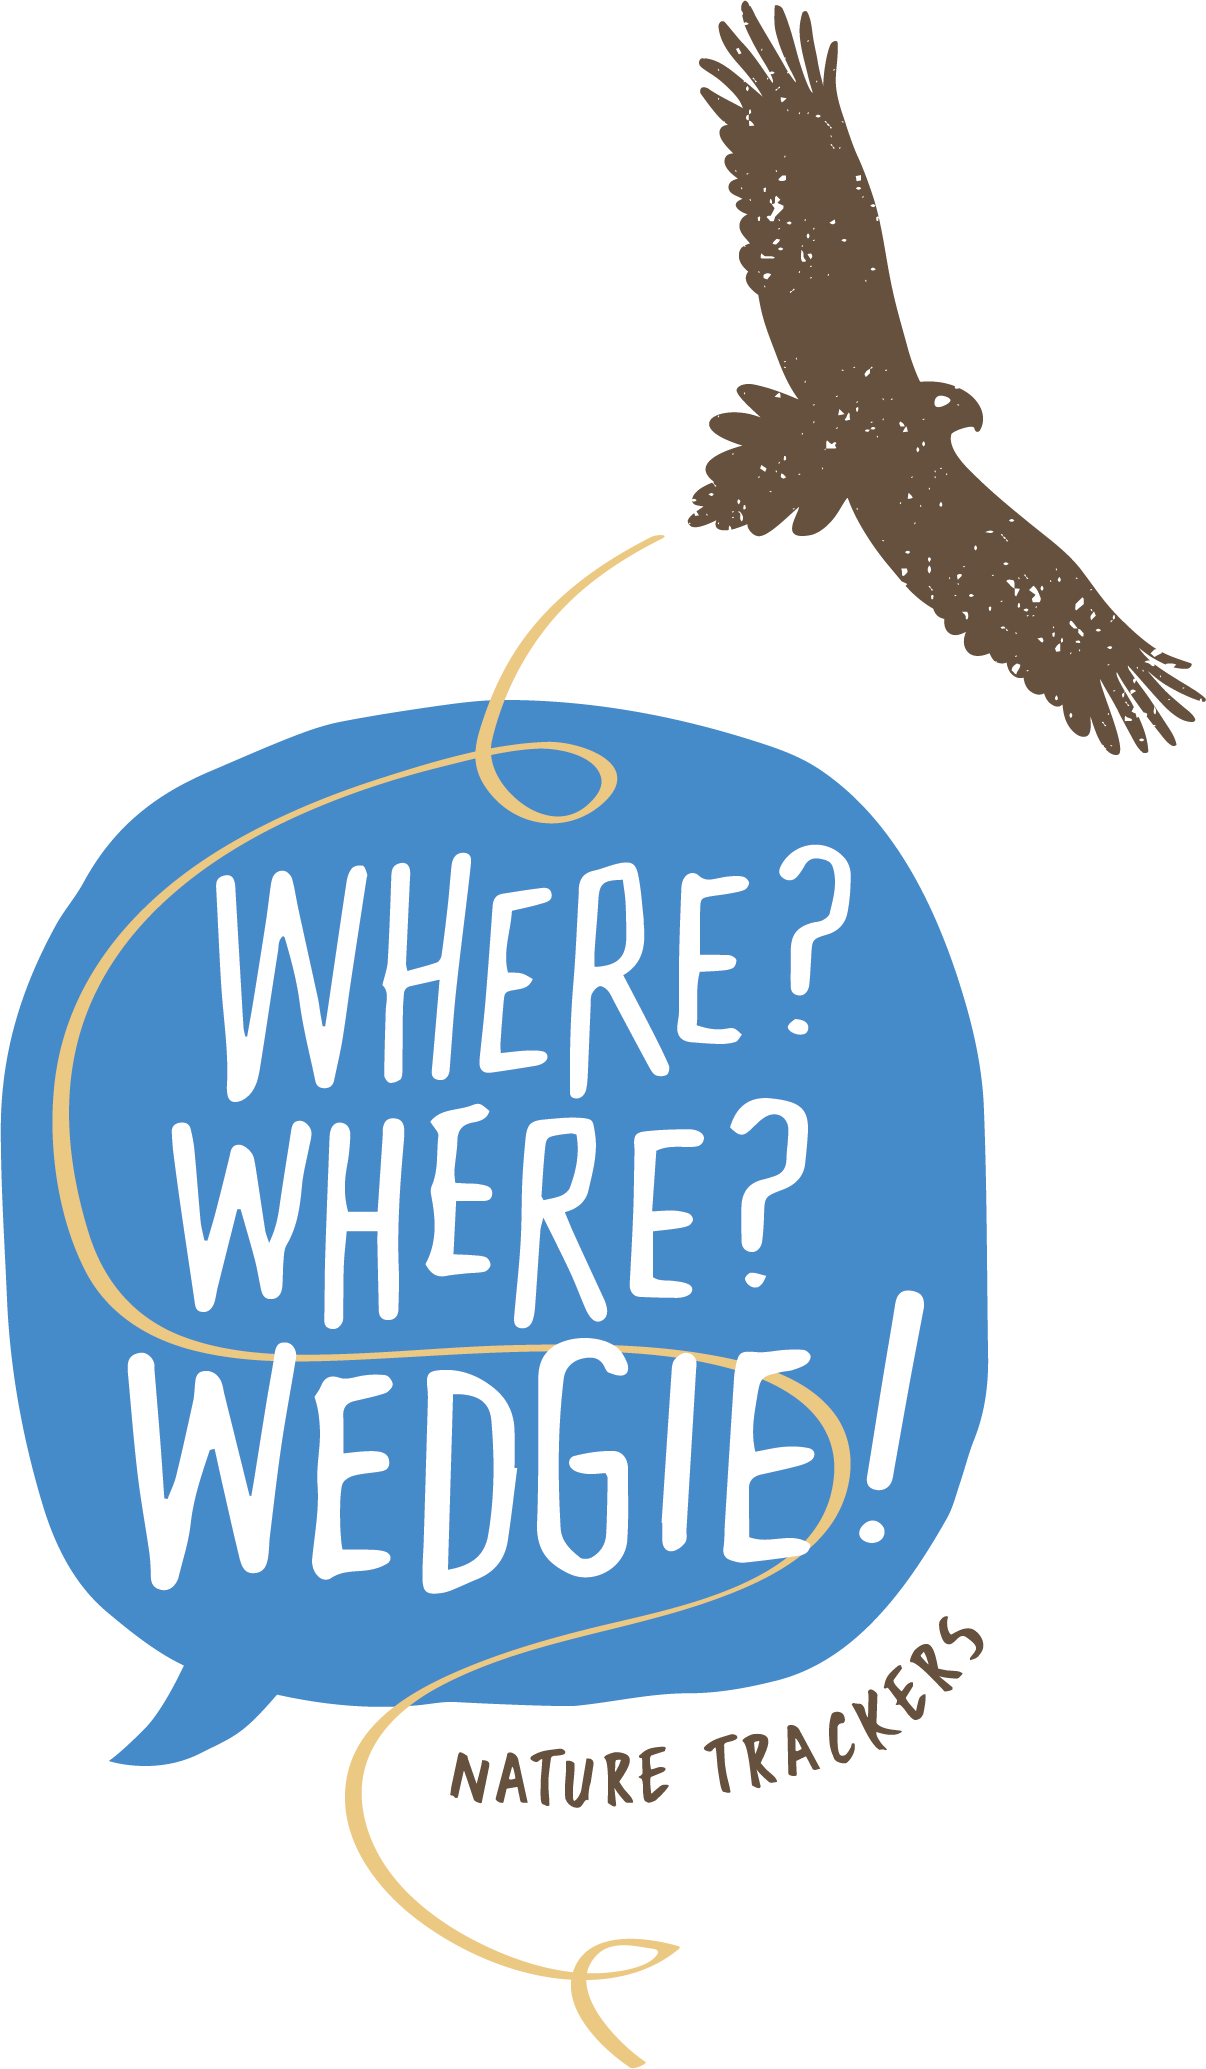 Where_Wedgie